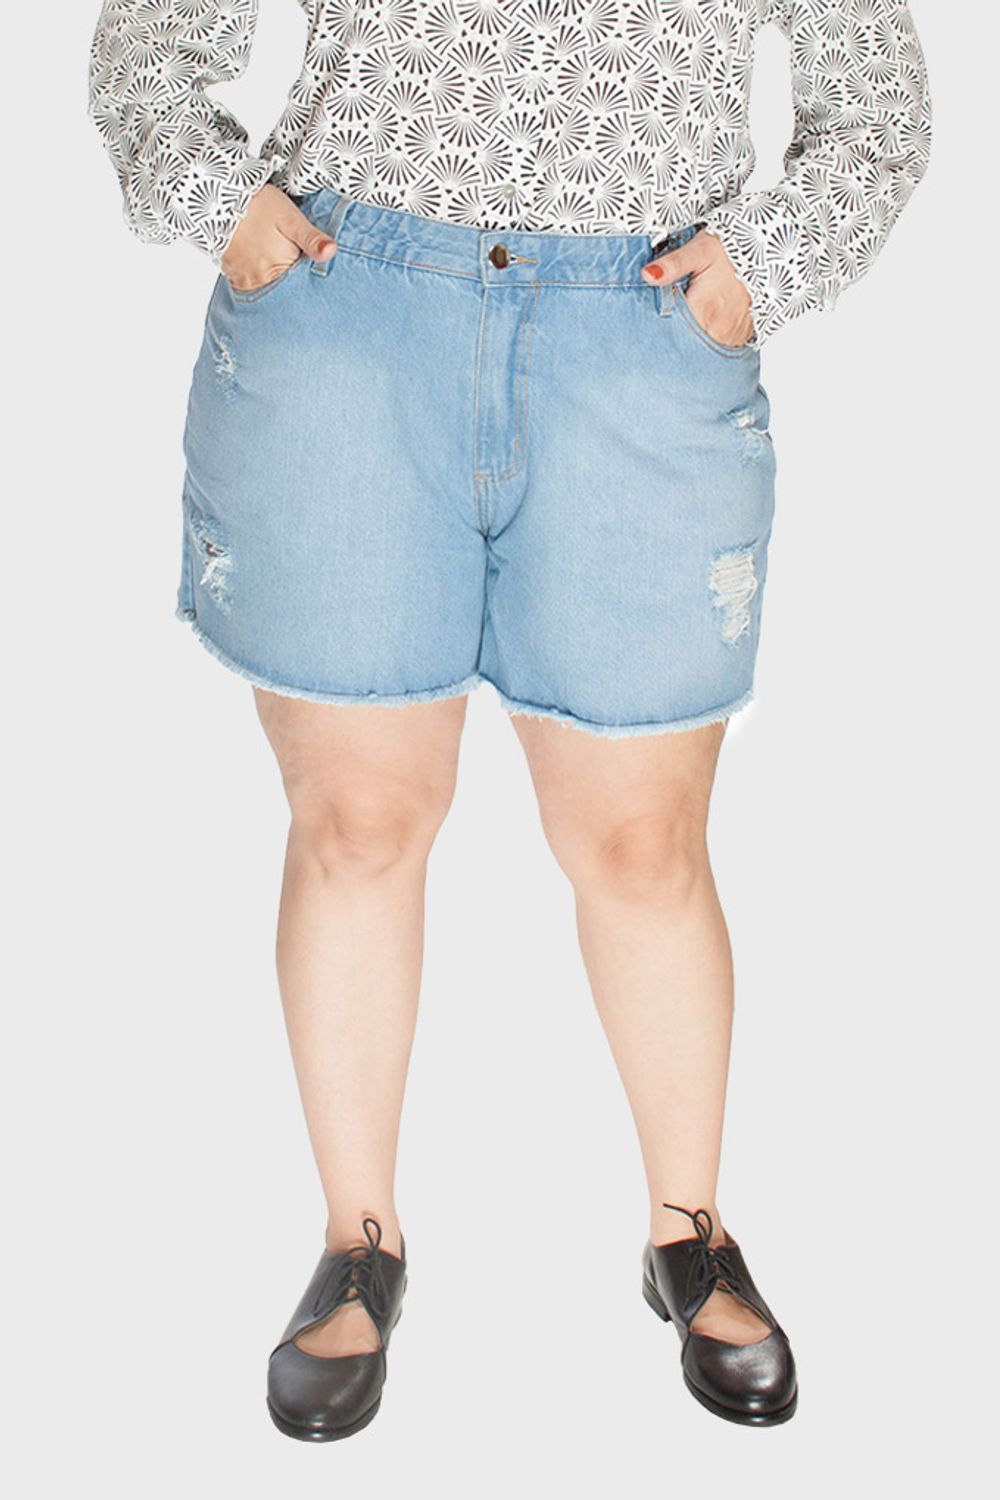 Shorts-Jeans-Upcycle-Delave-Plus-Size_2